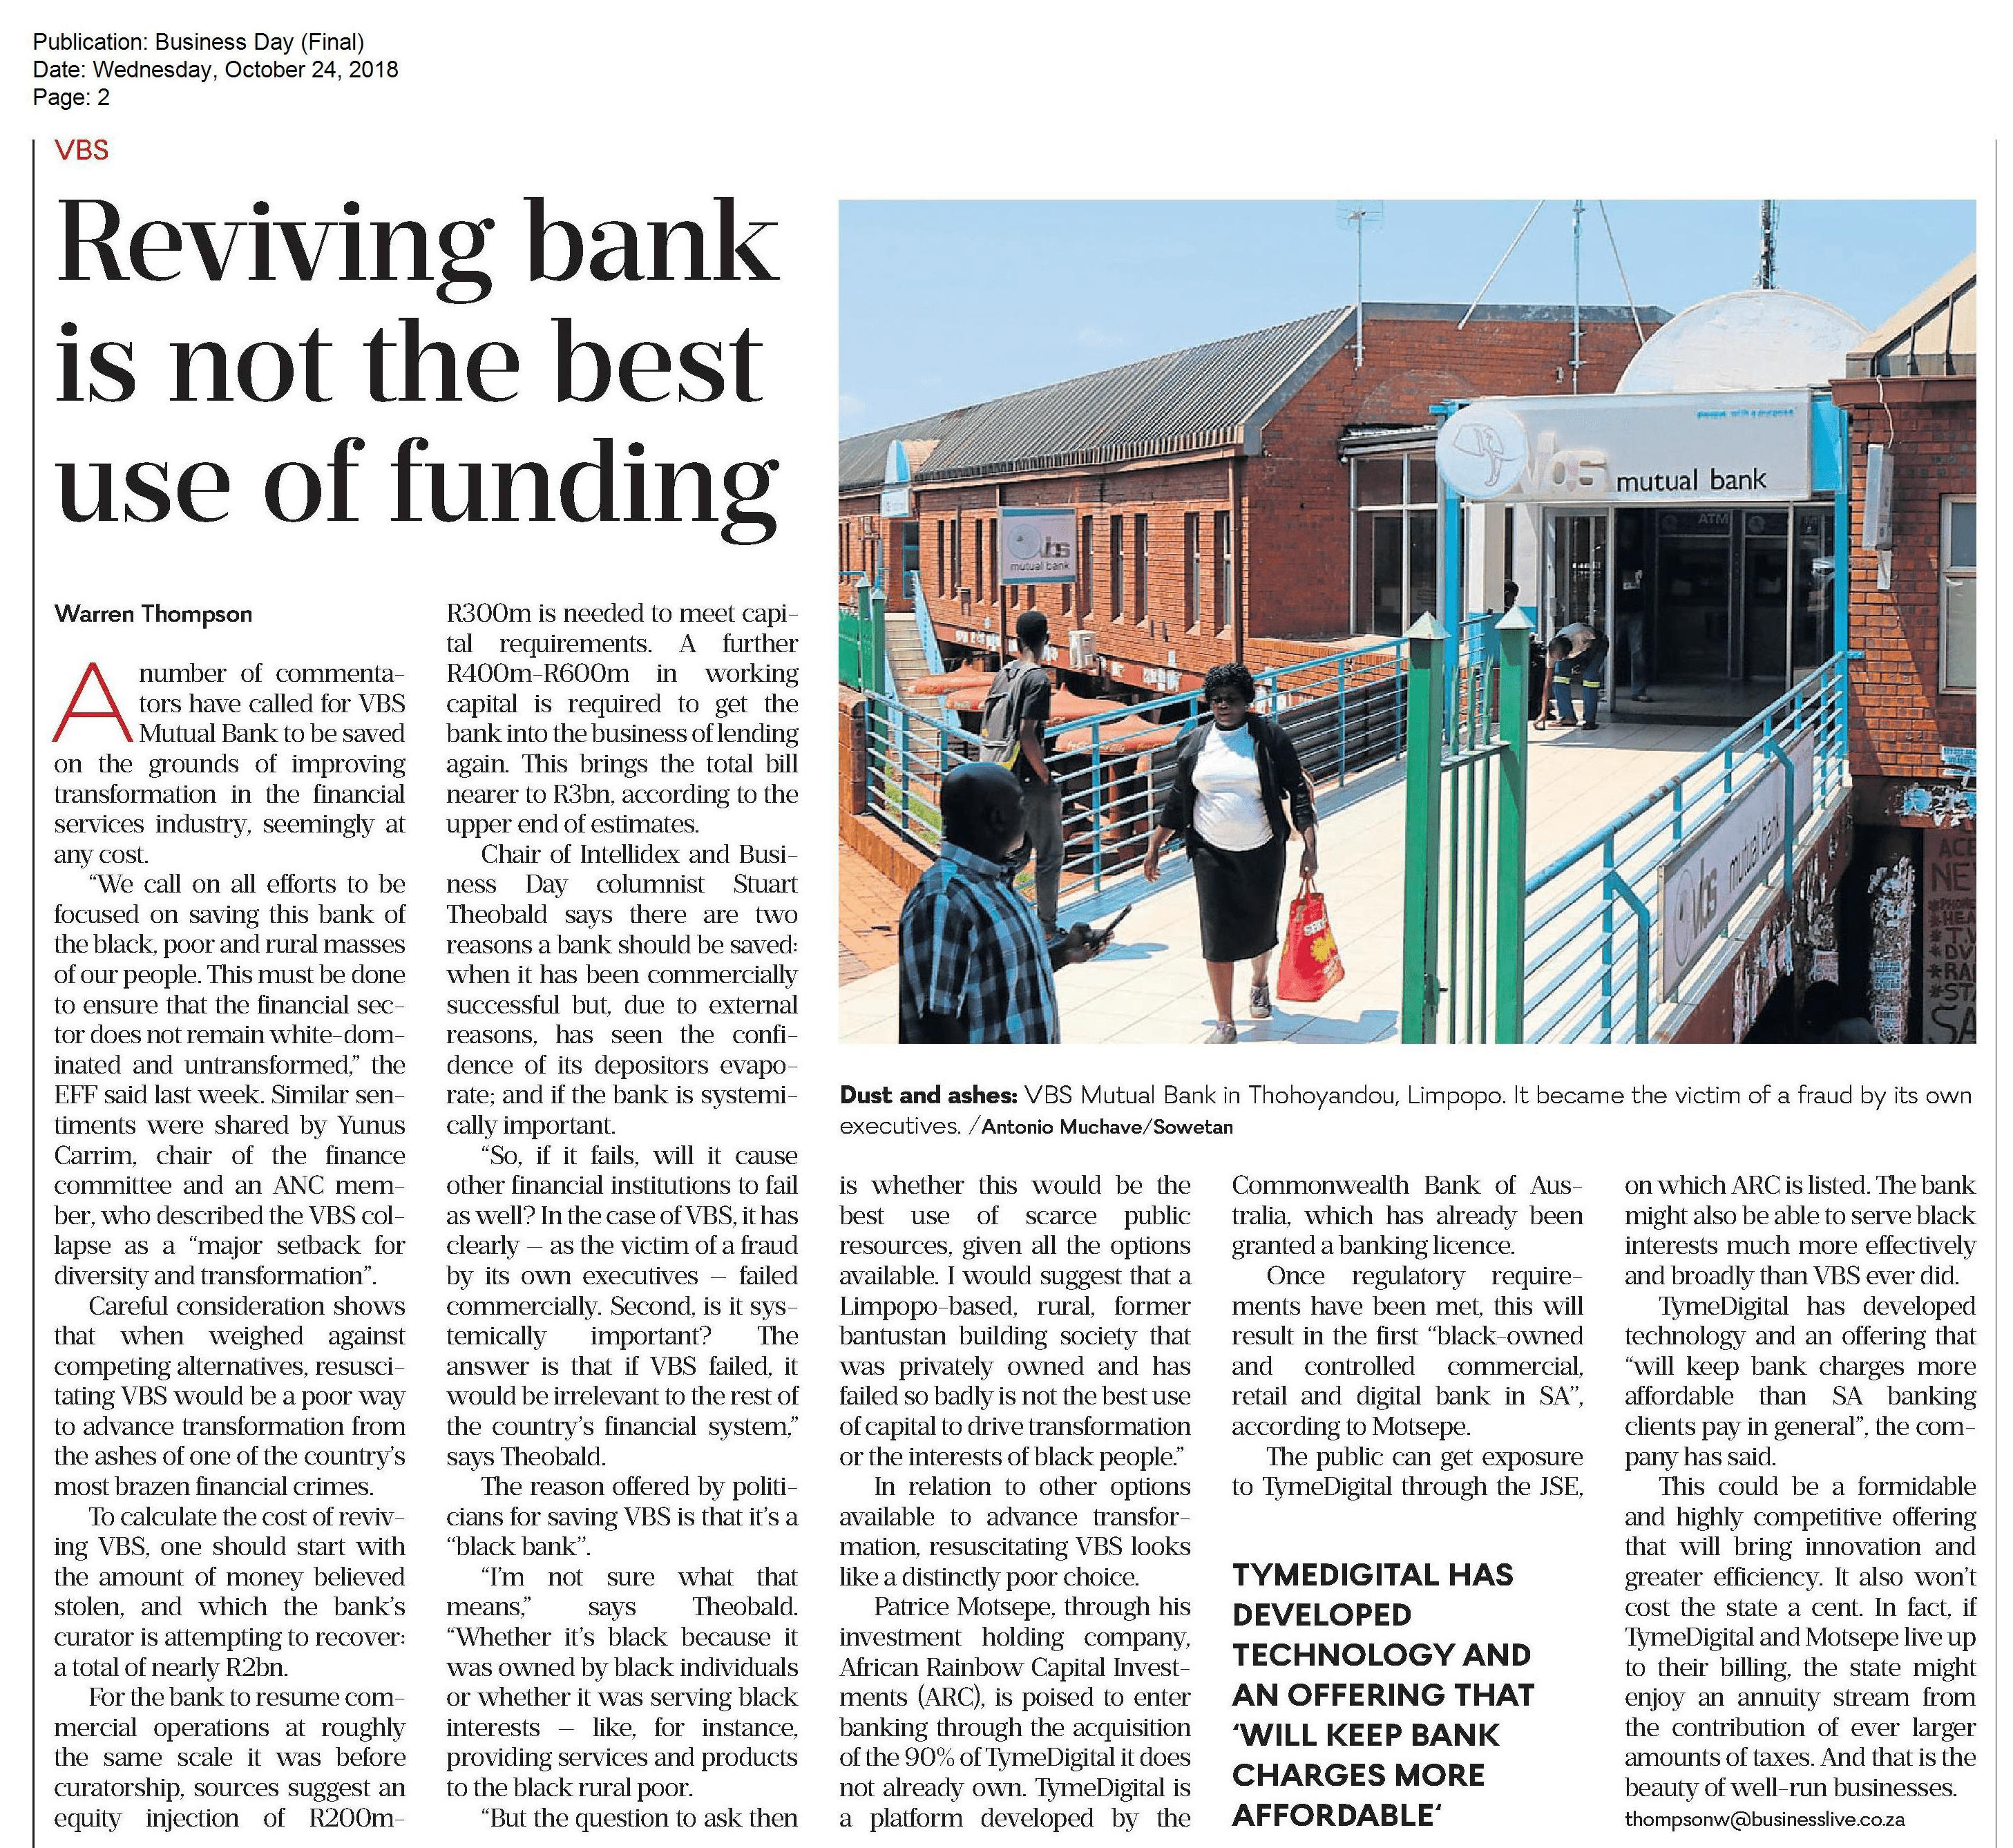 Reviving bank is not the best use of funding